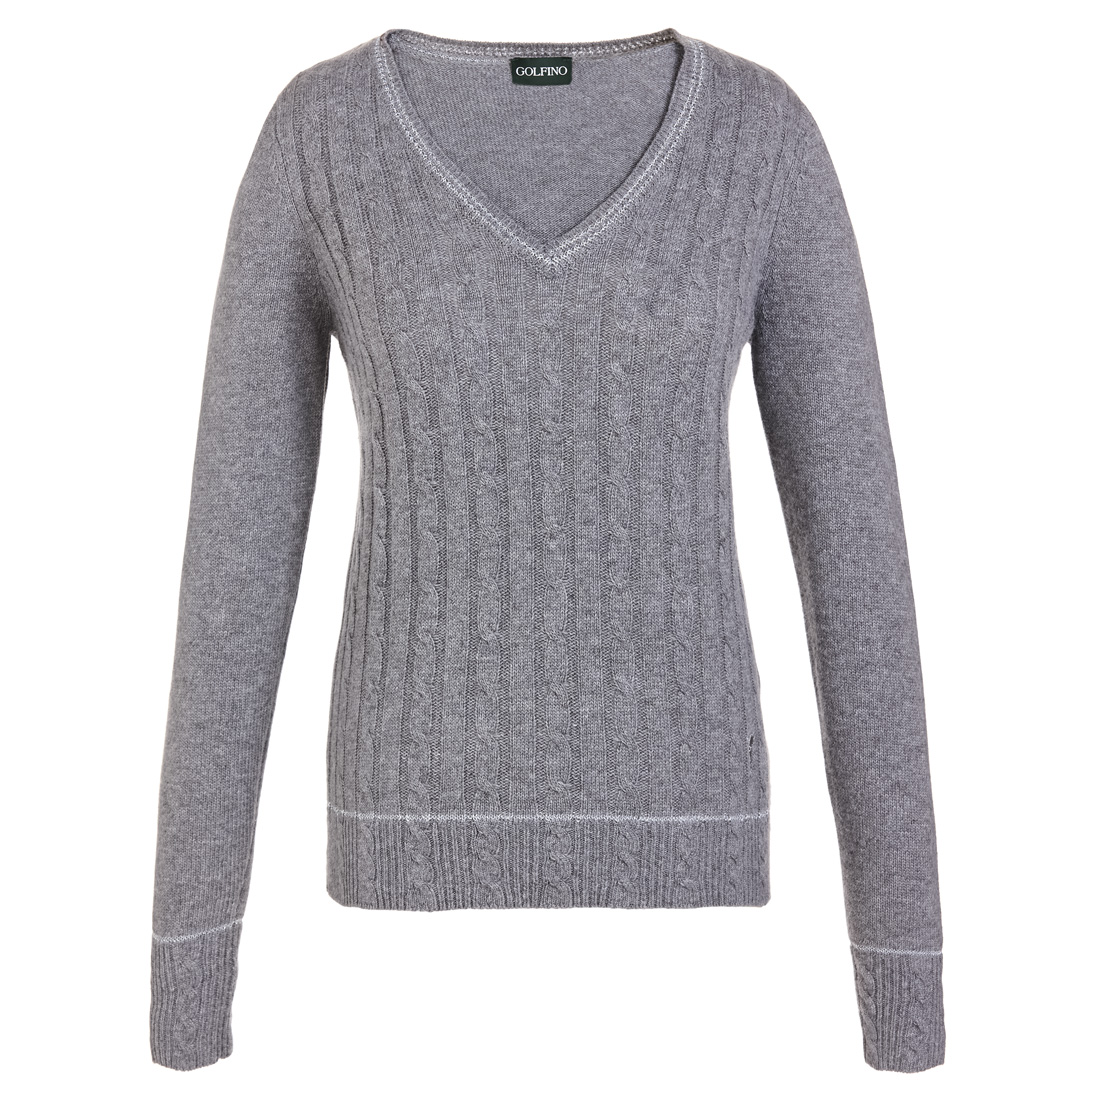 Ladies' V-neck golf sweater with cable pattern in fine wool blend